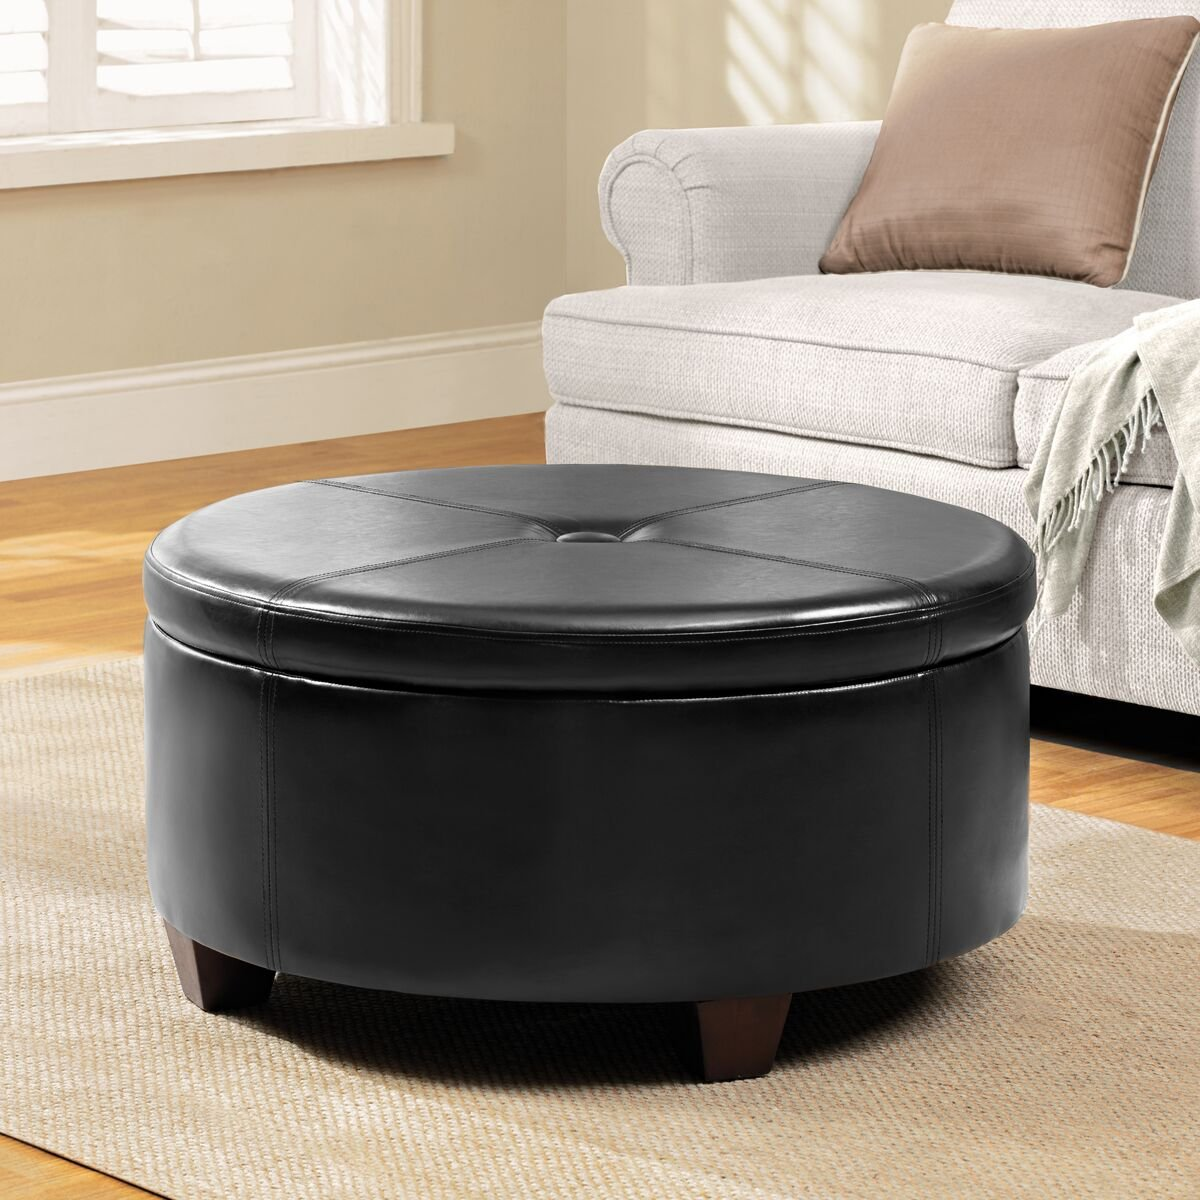 HomePop K5508-E676 Leatherette Round Button Tufted Storage Ottoman, 31.75'' x 16.50'', Black by HomePop (Image #2)